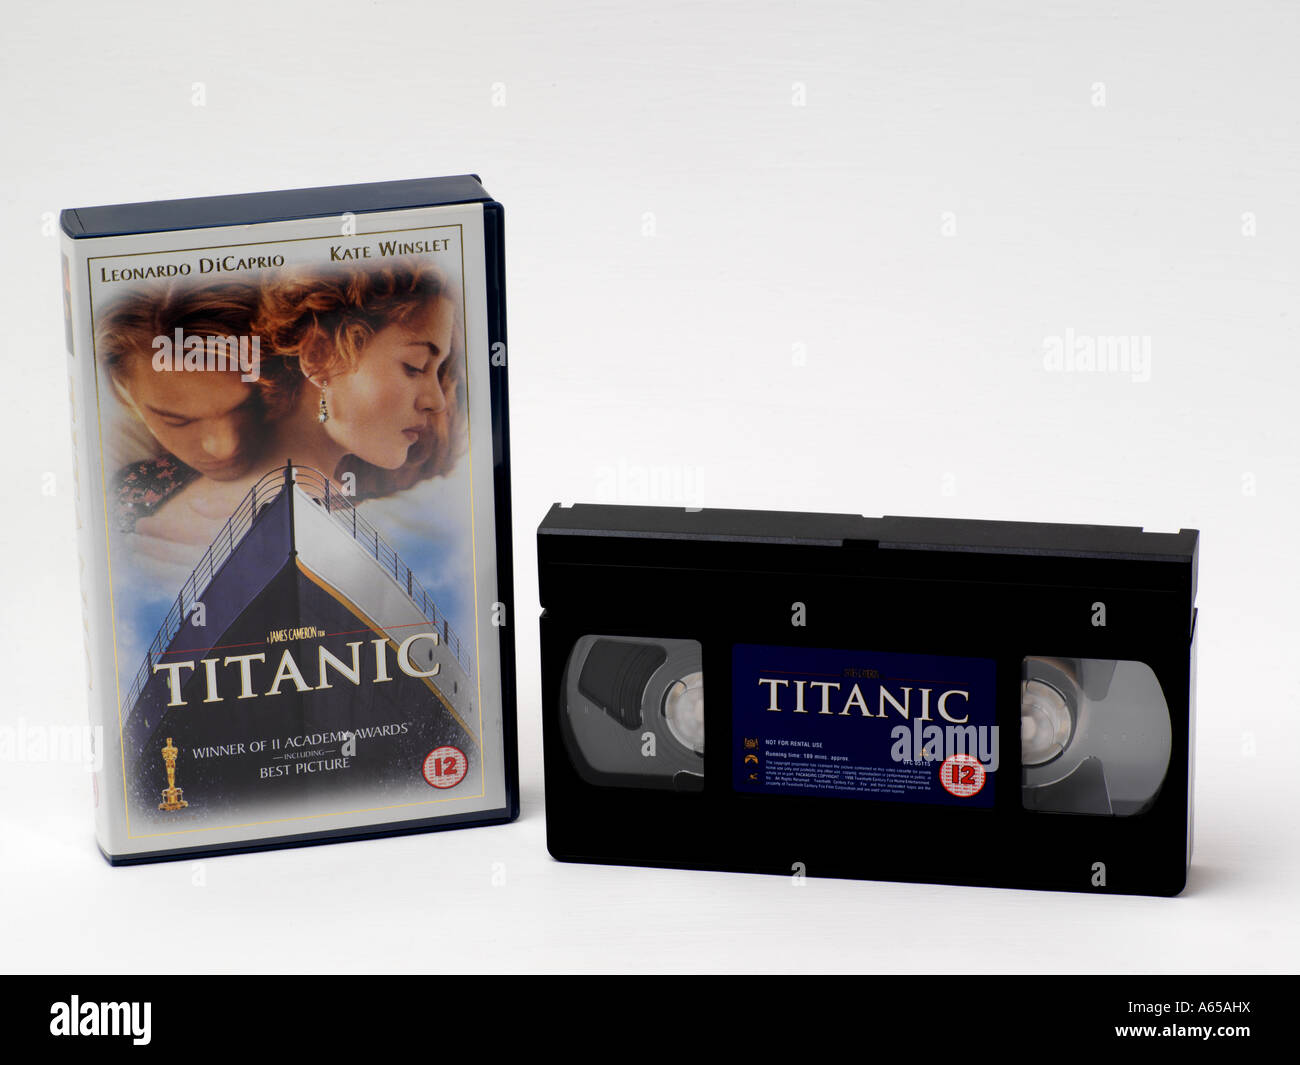 Titanic - Video Cassette & Box - Stock Image